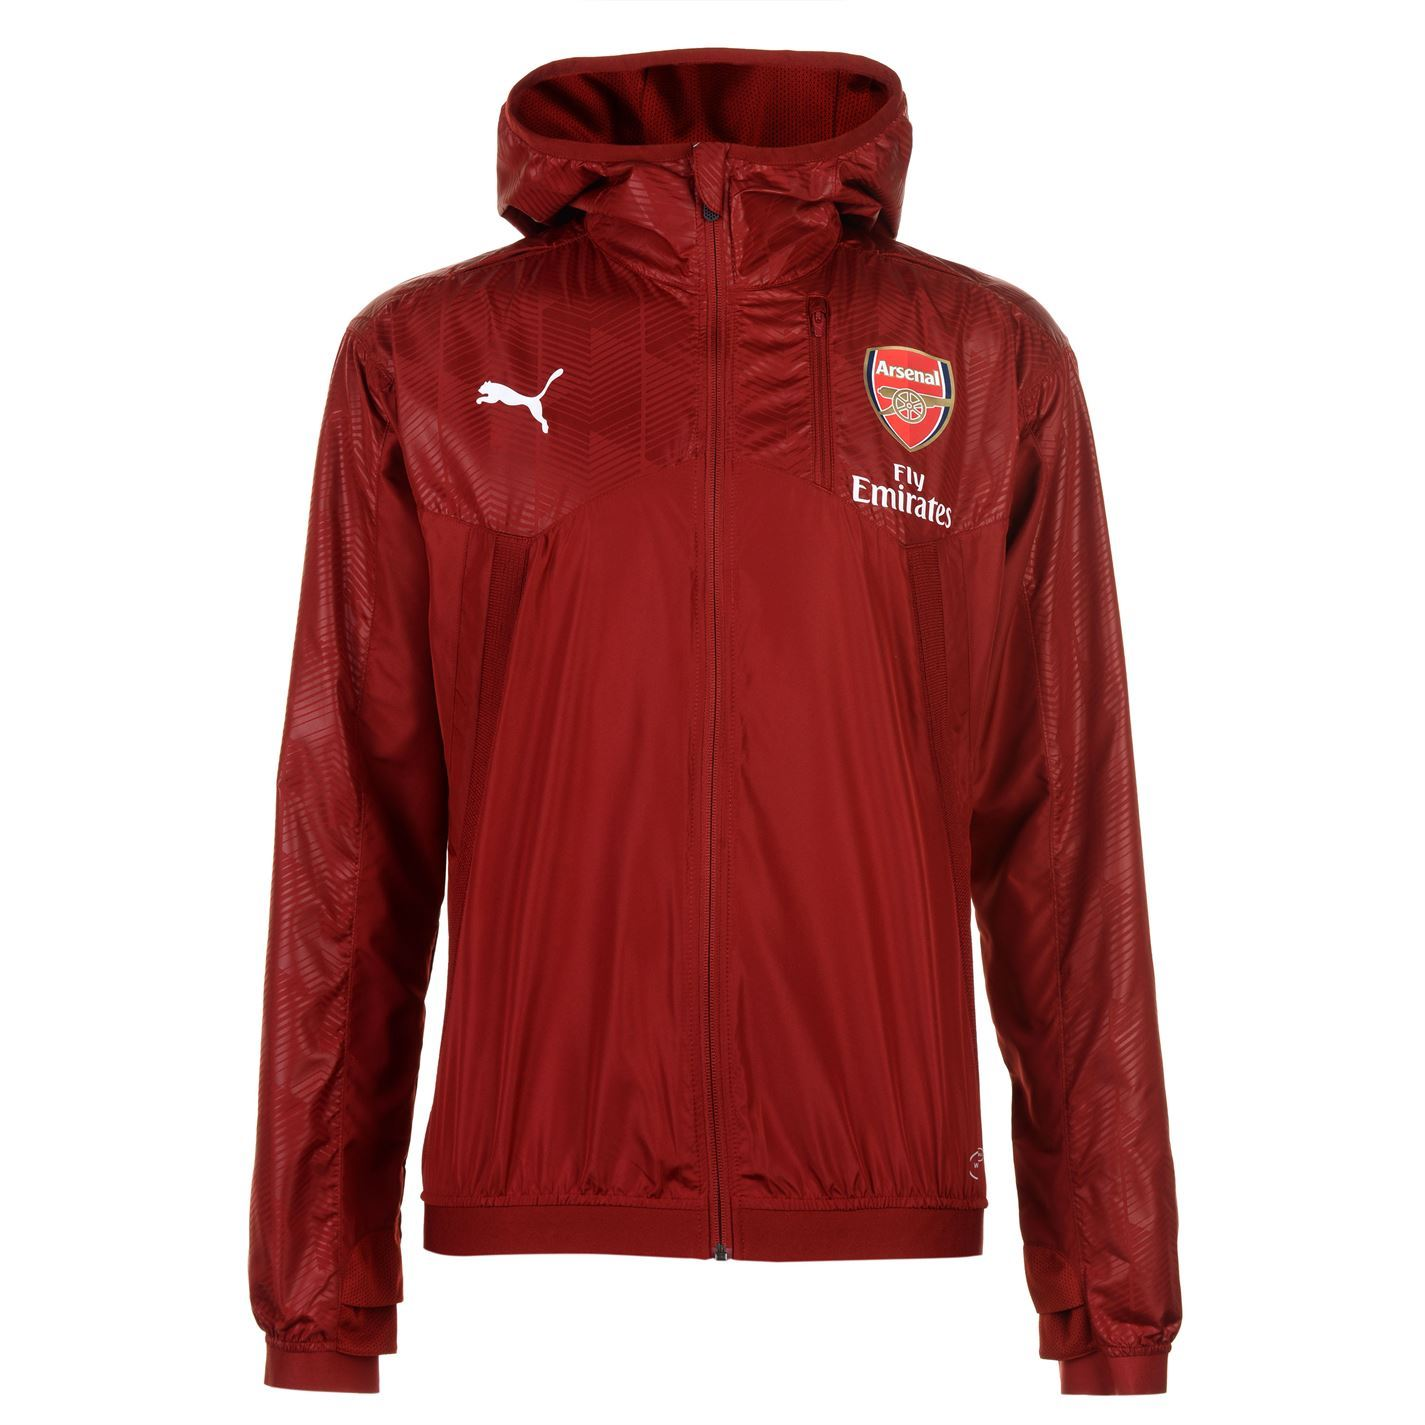 Details about Puma Arsenal Vent Hooded Jacket Mens Red Football Soccer Top  Outerwear Gunners